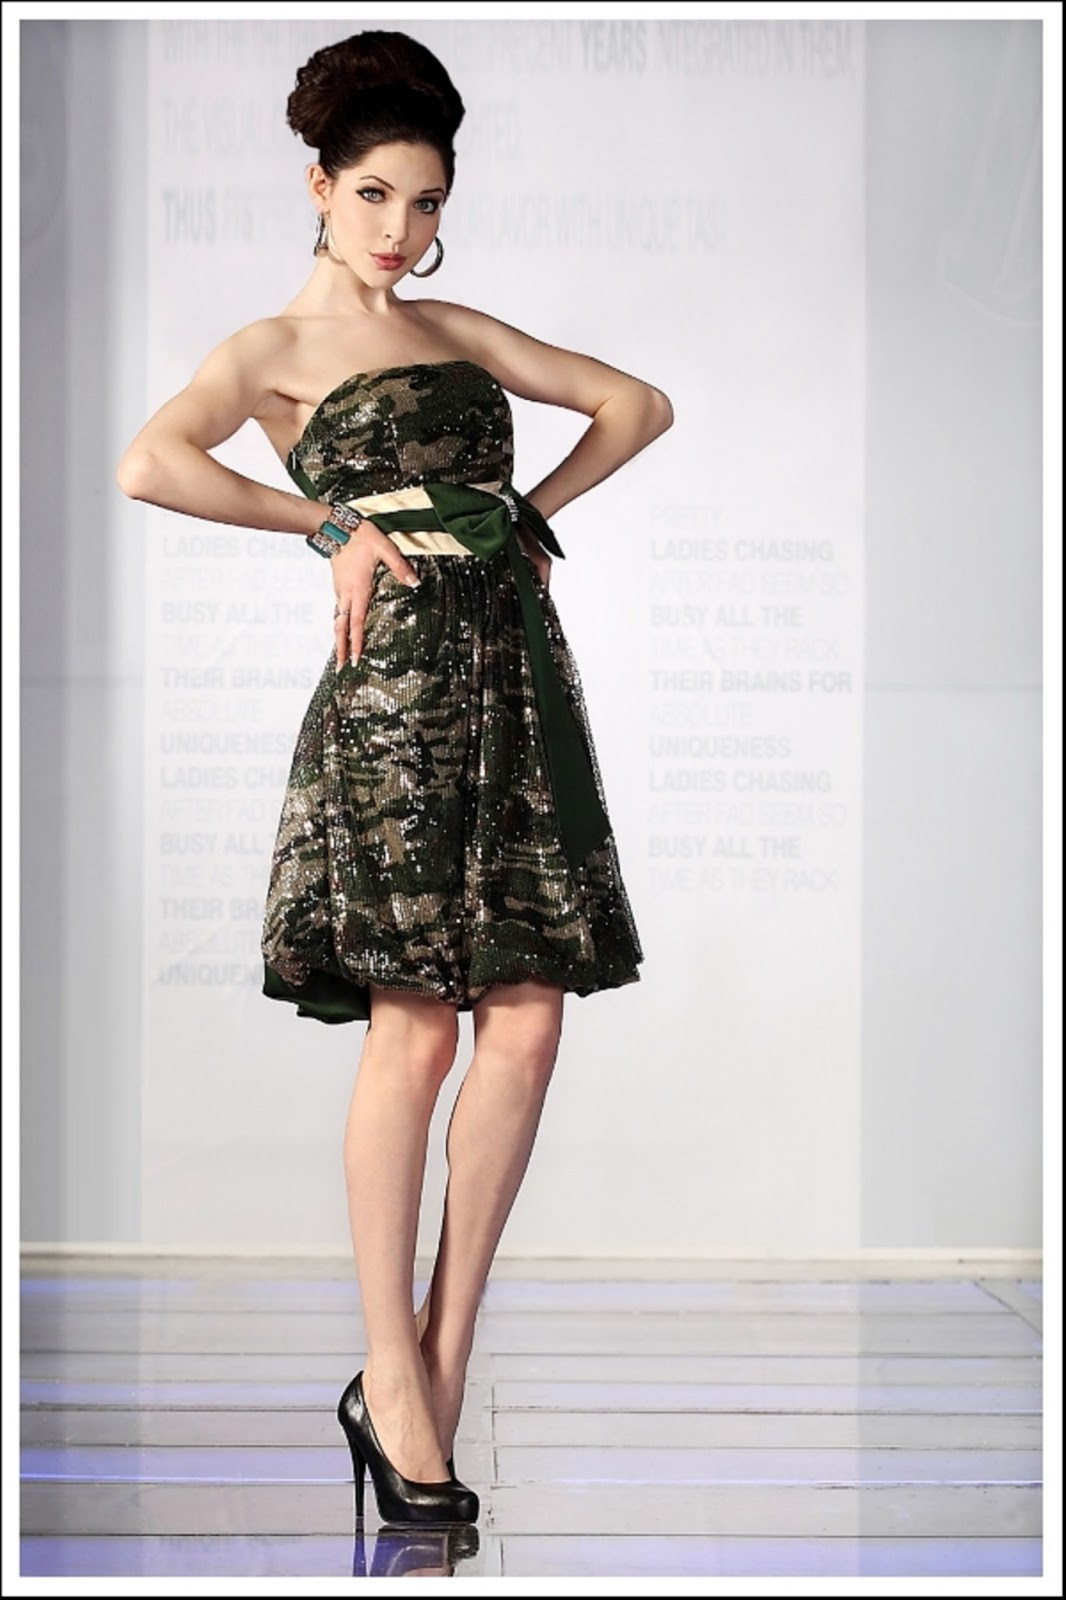 short wedding dresses with camo realtree wedding dresses Camo Dresses for a Wedding Country Wedding Dresses Camo Sexy Camouflage Wedding Dresses